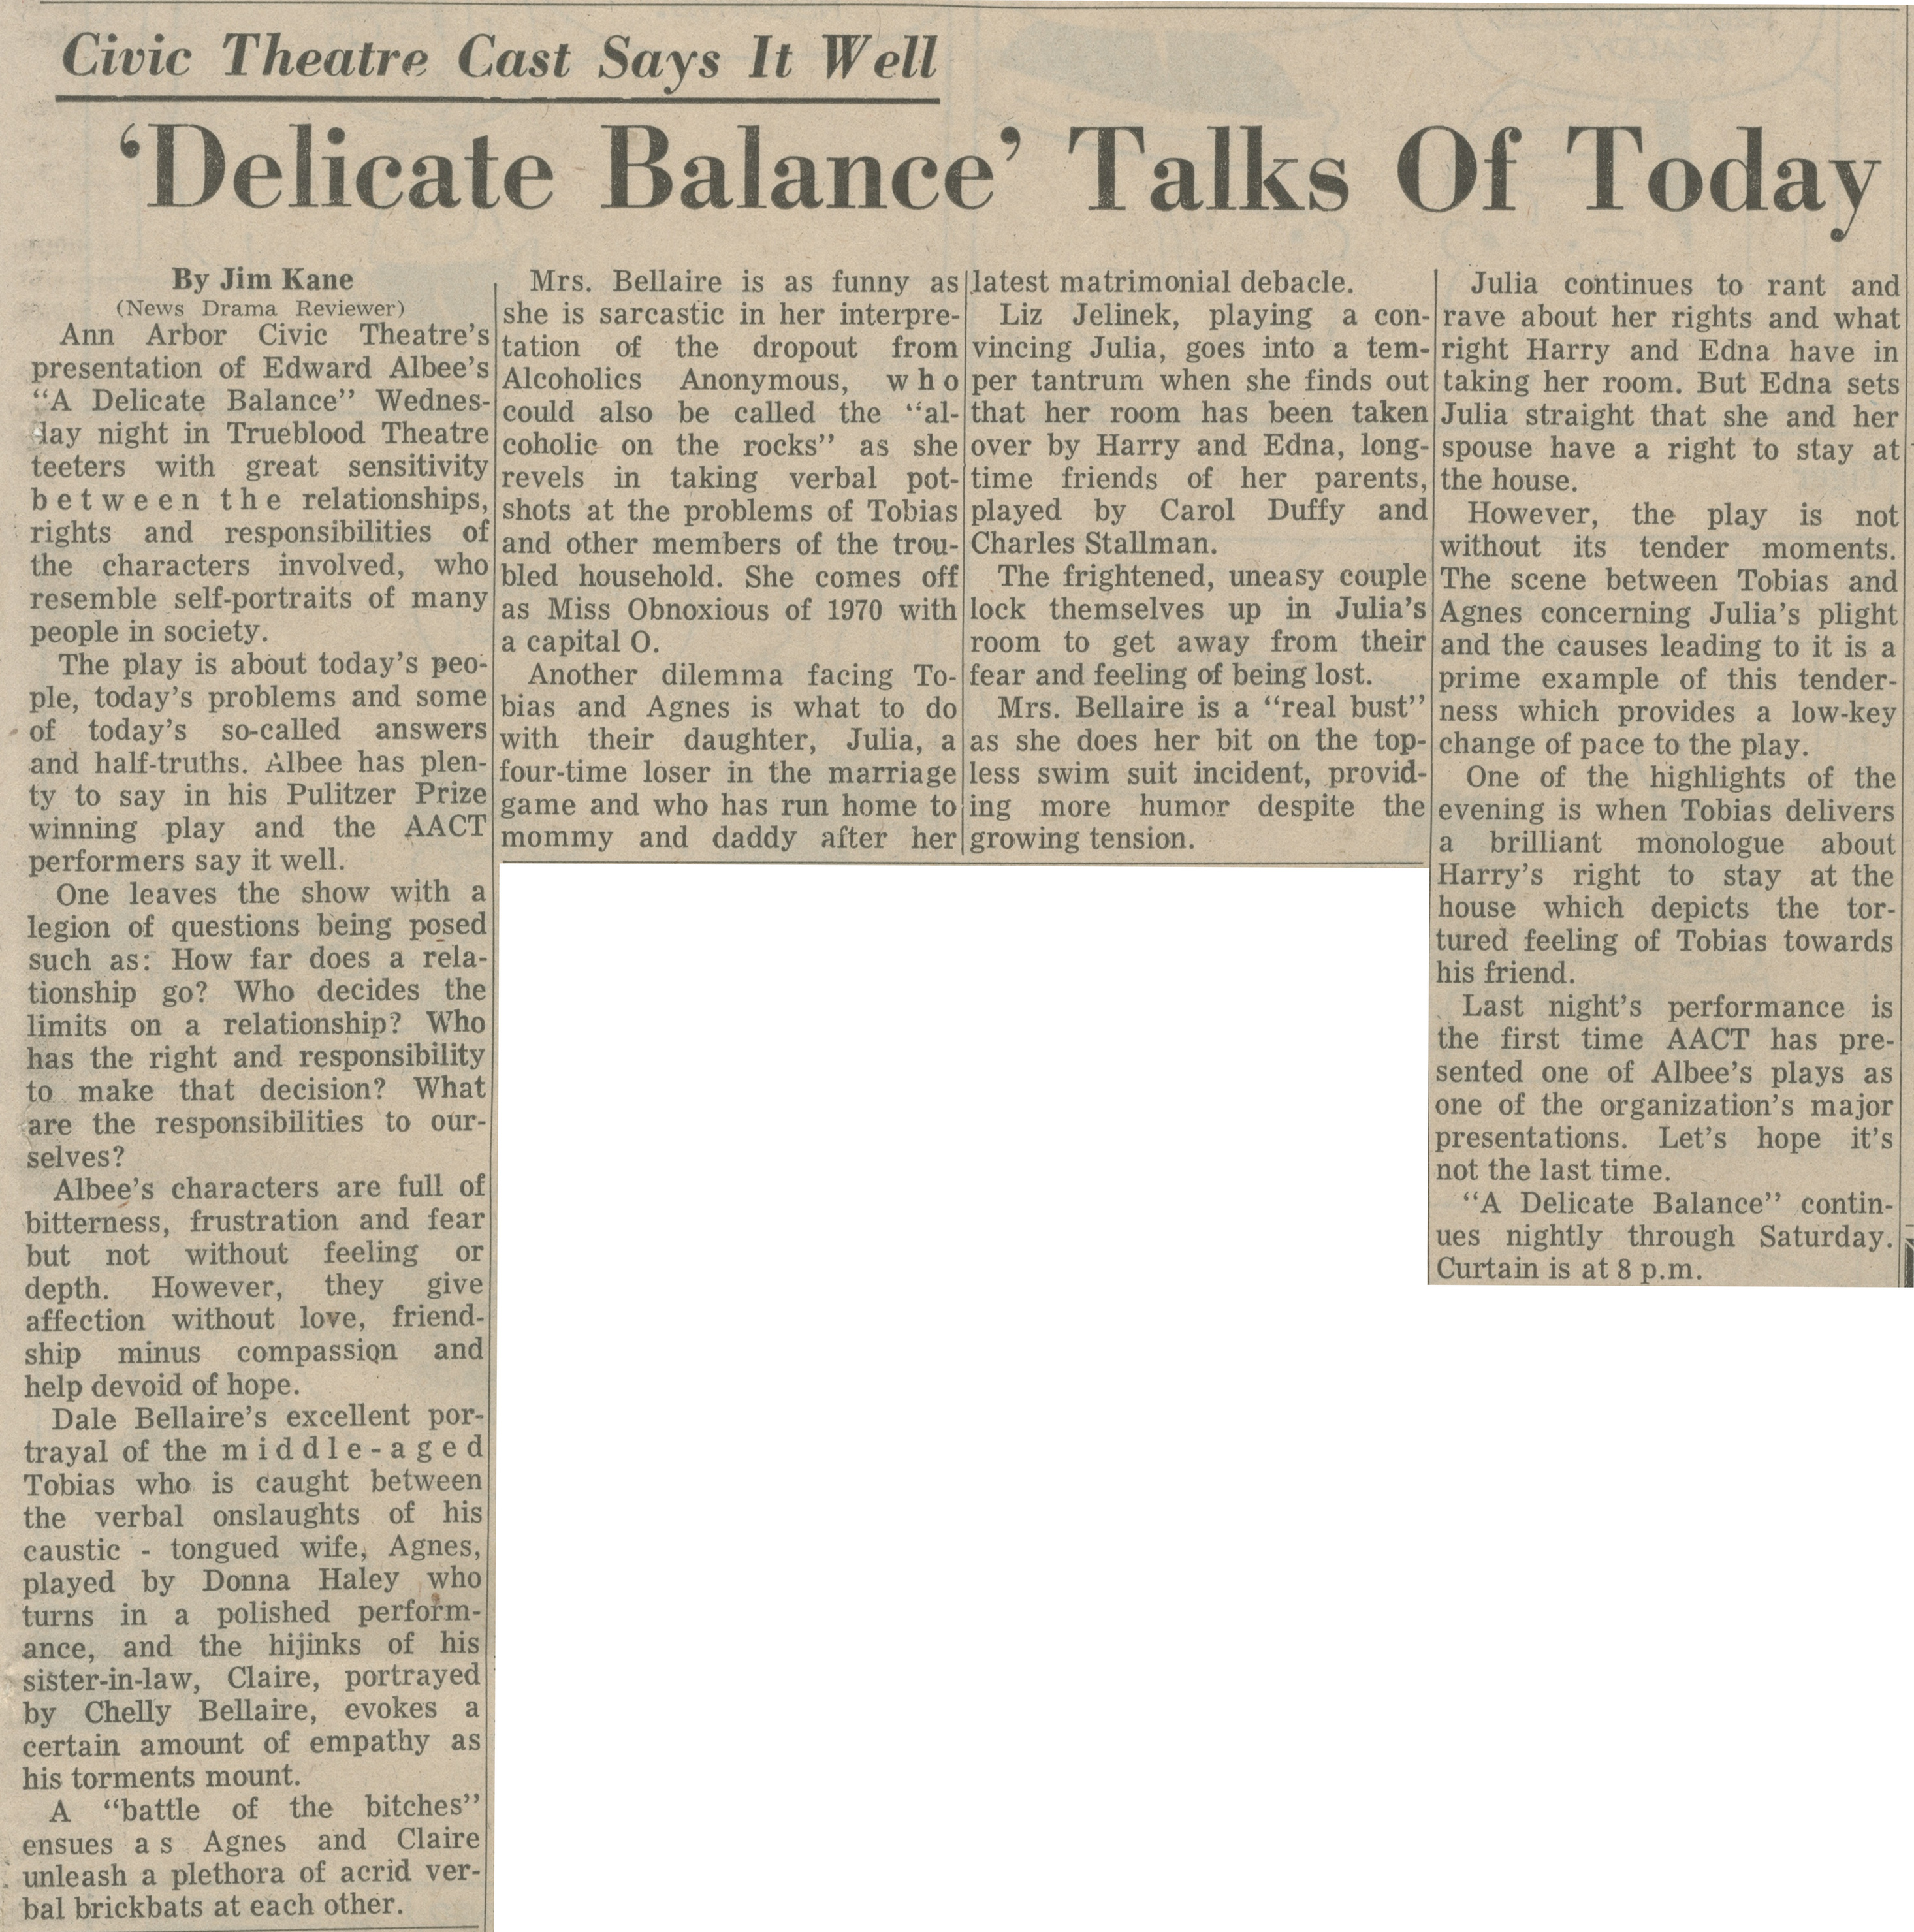 'Delicate Balance' Talks Of Today image